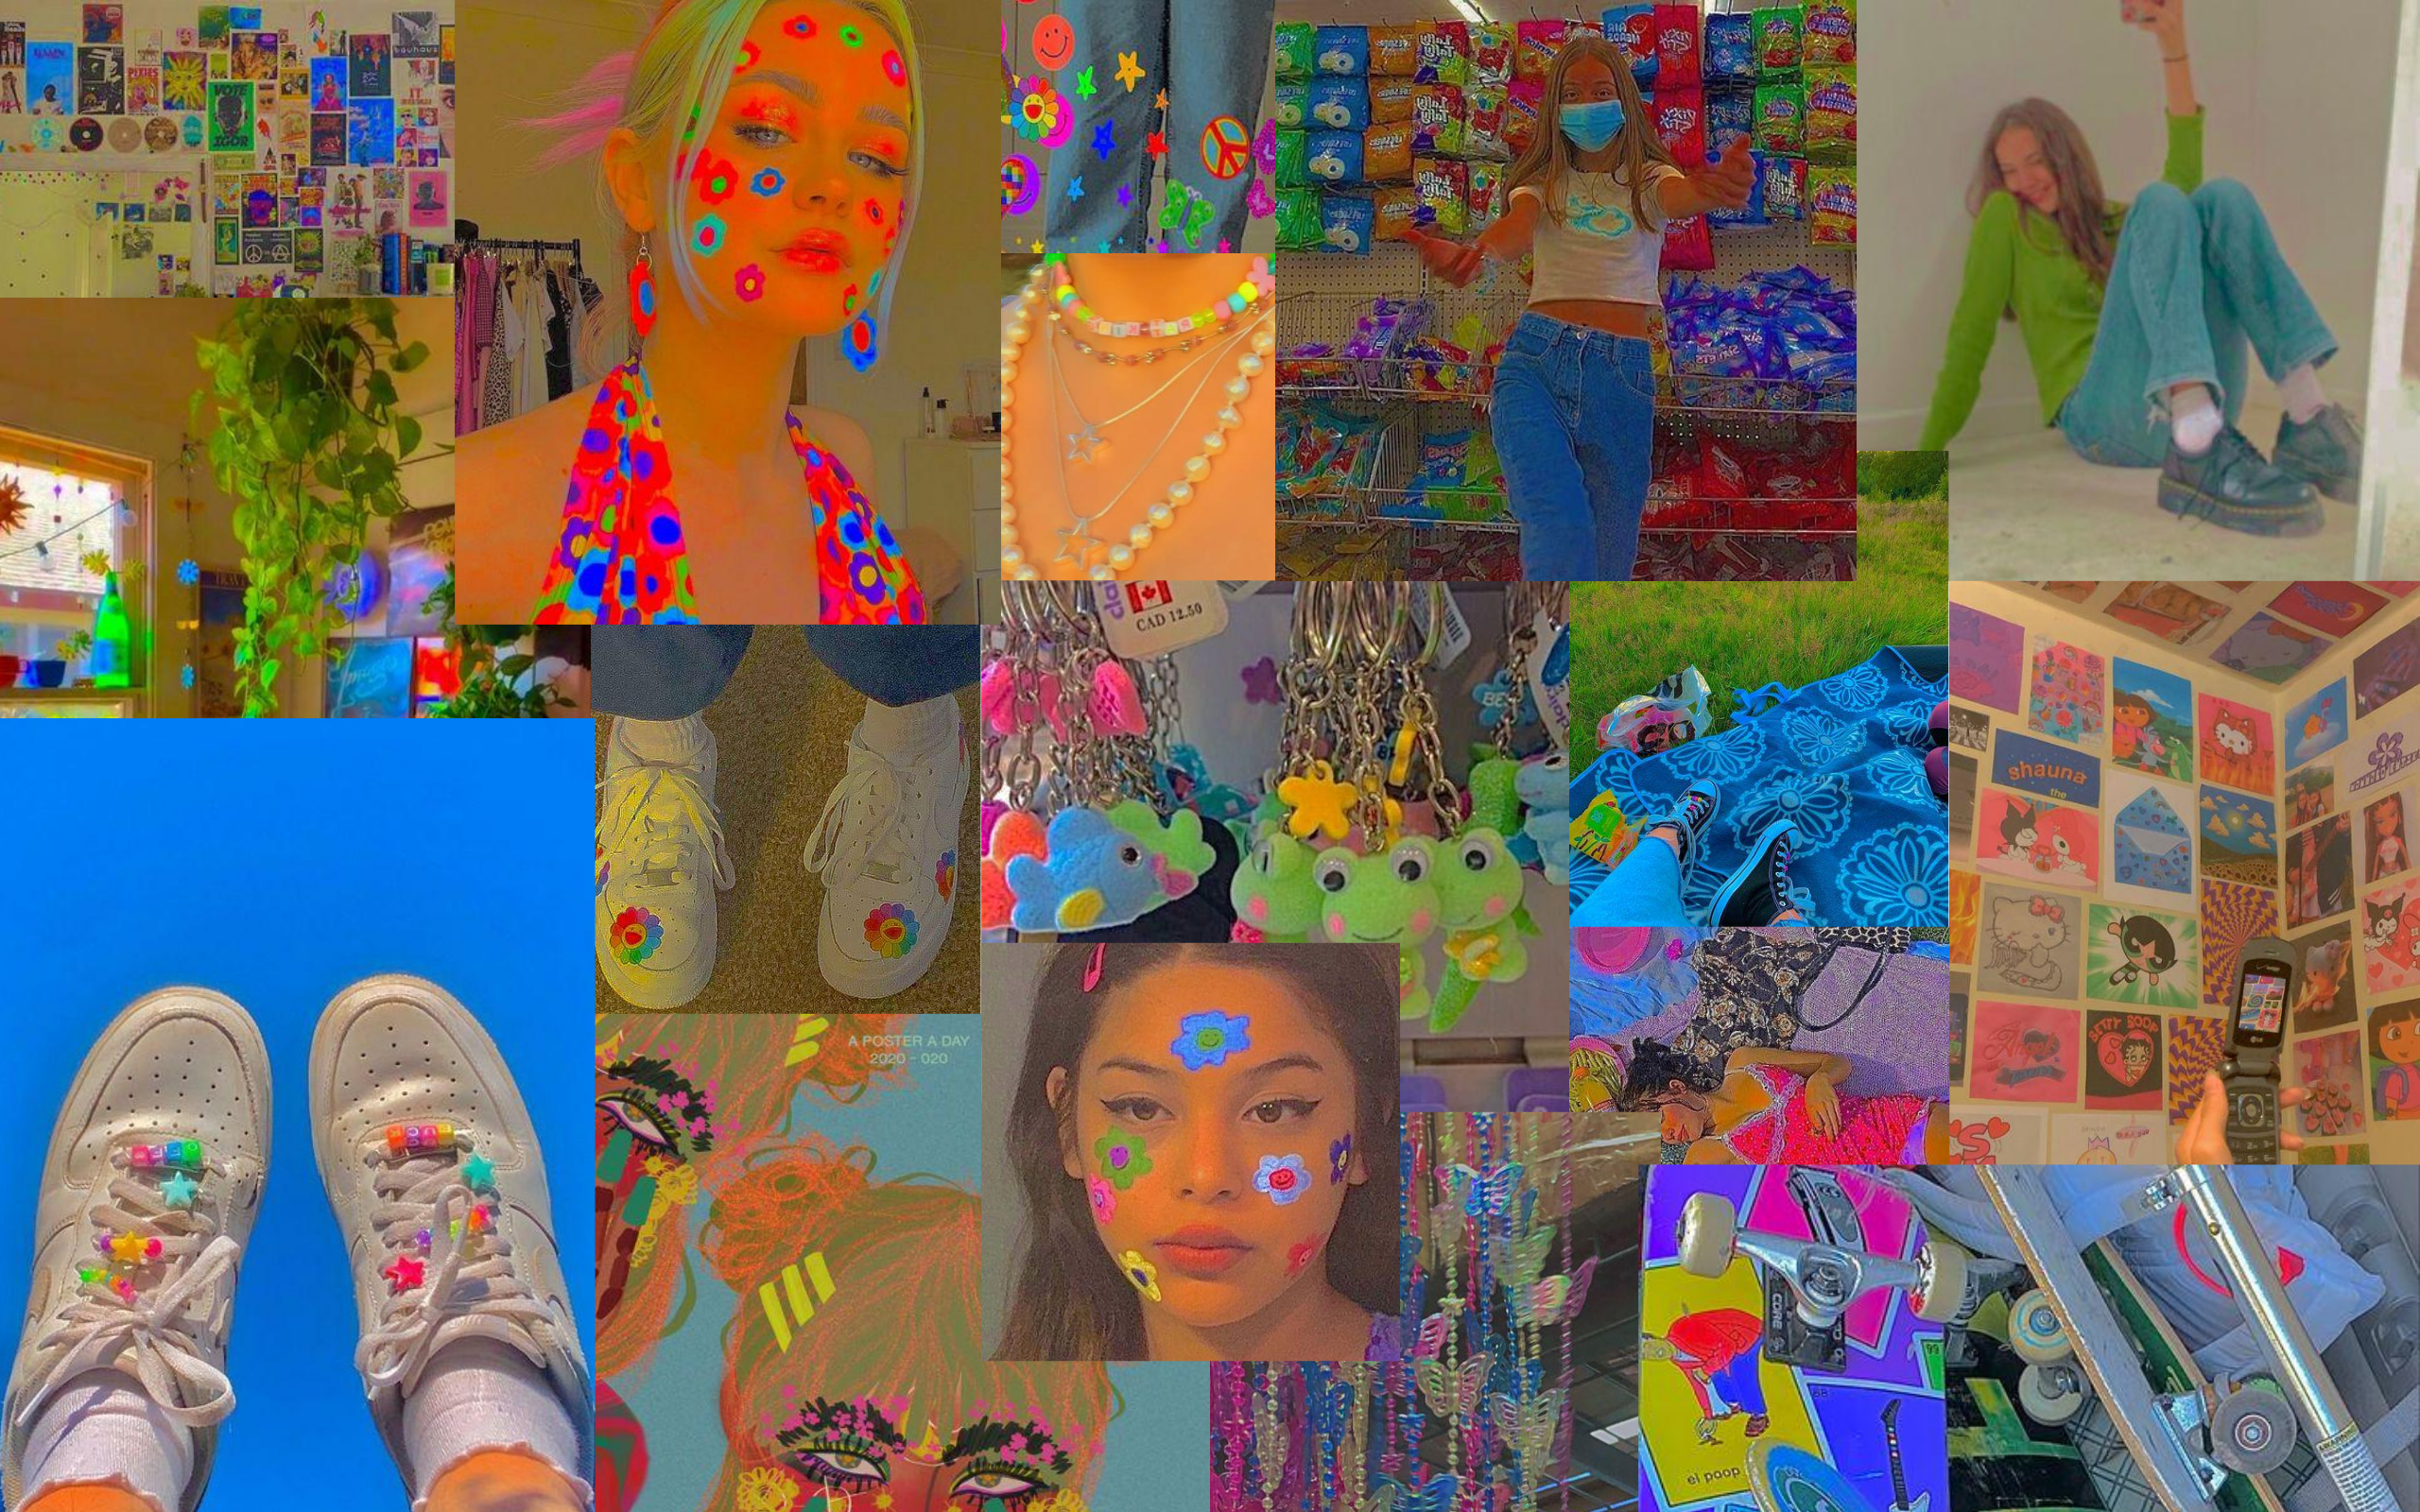 Indie Collage Cute Laptop Wallpaper Iphone Background Wallpaper Cute Patterns Wallpaper